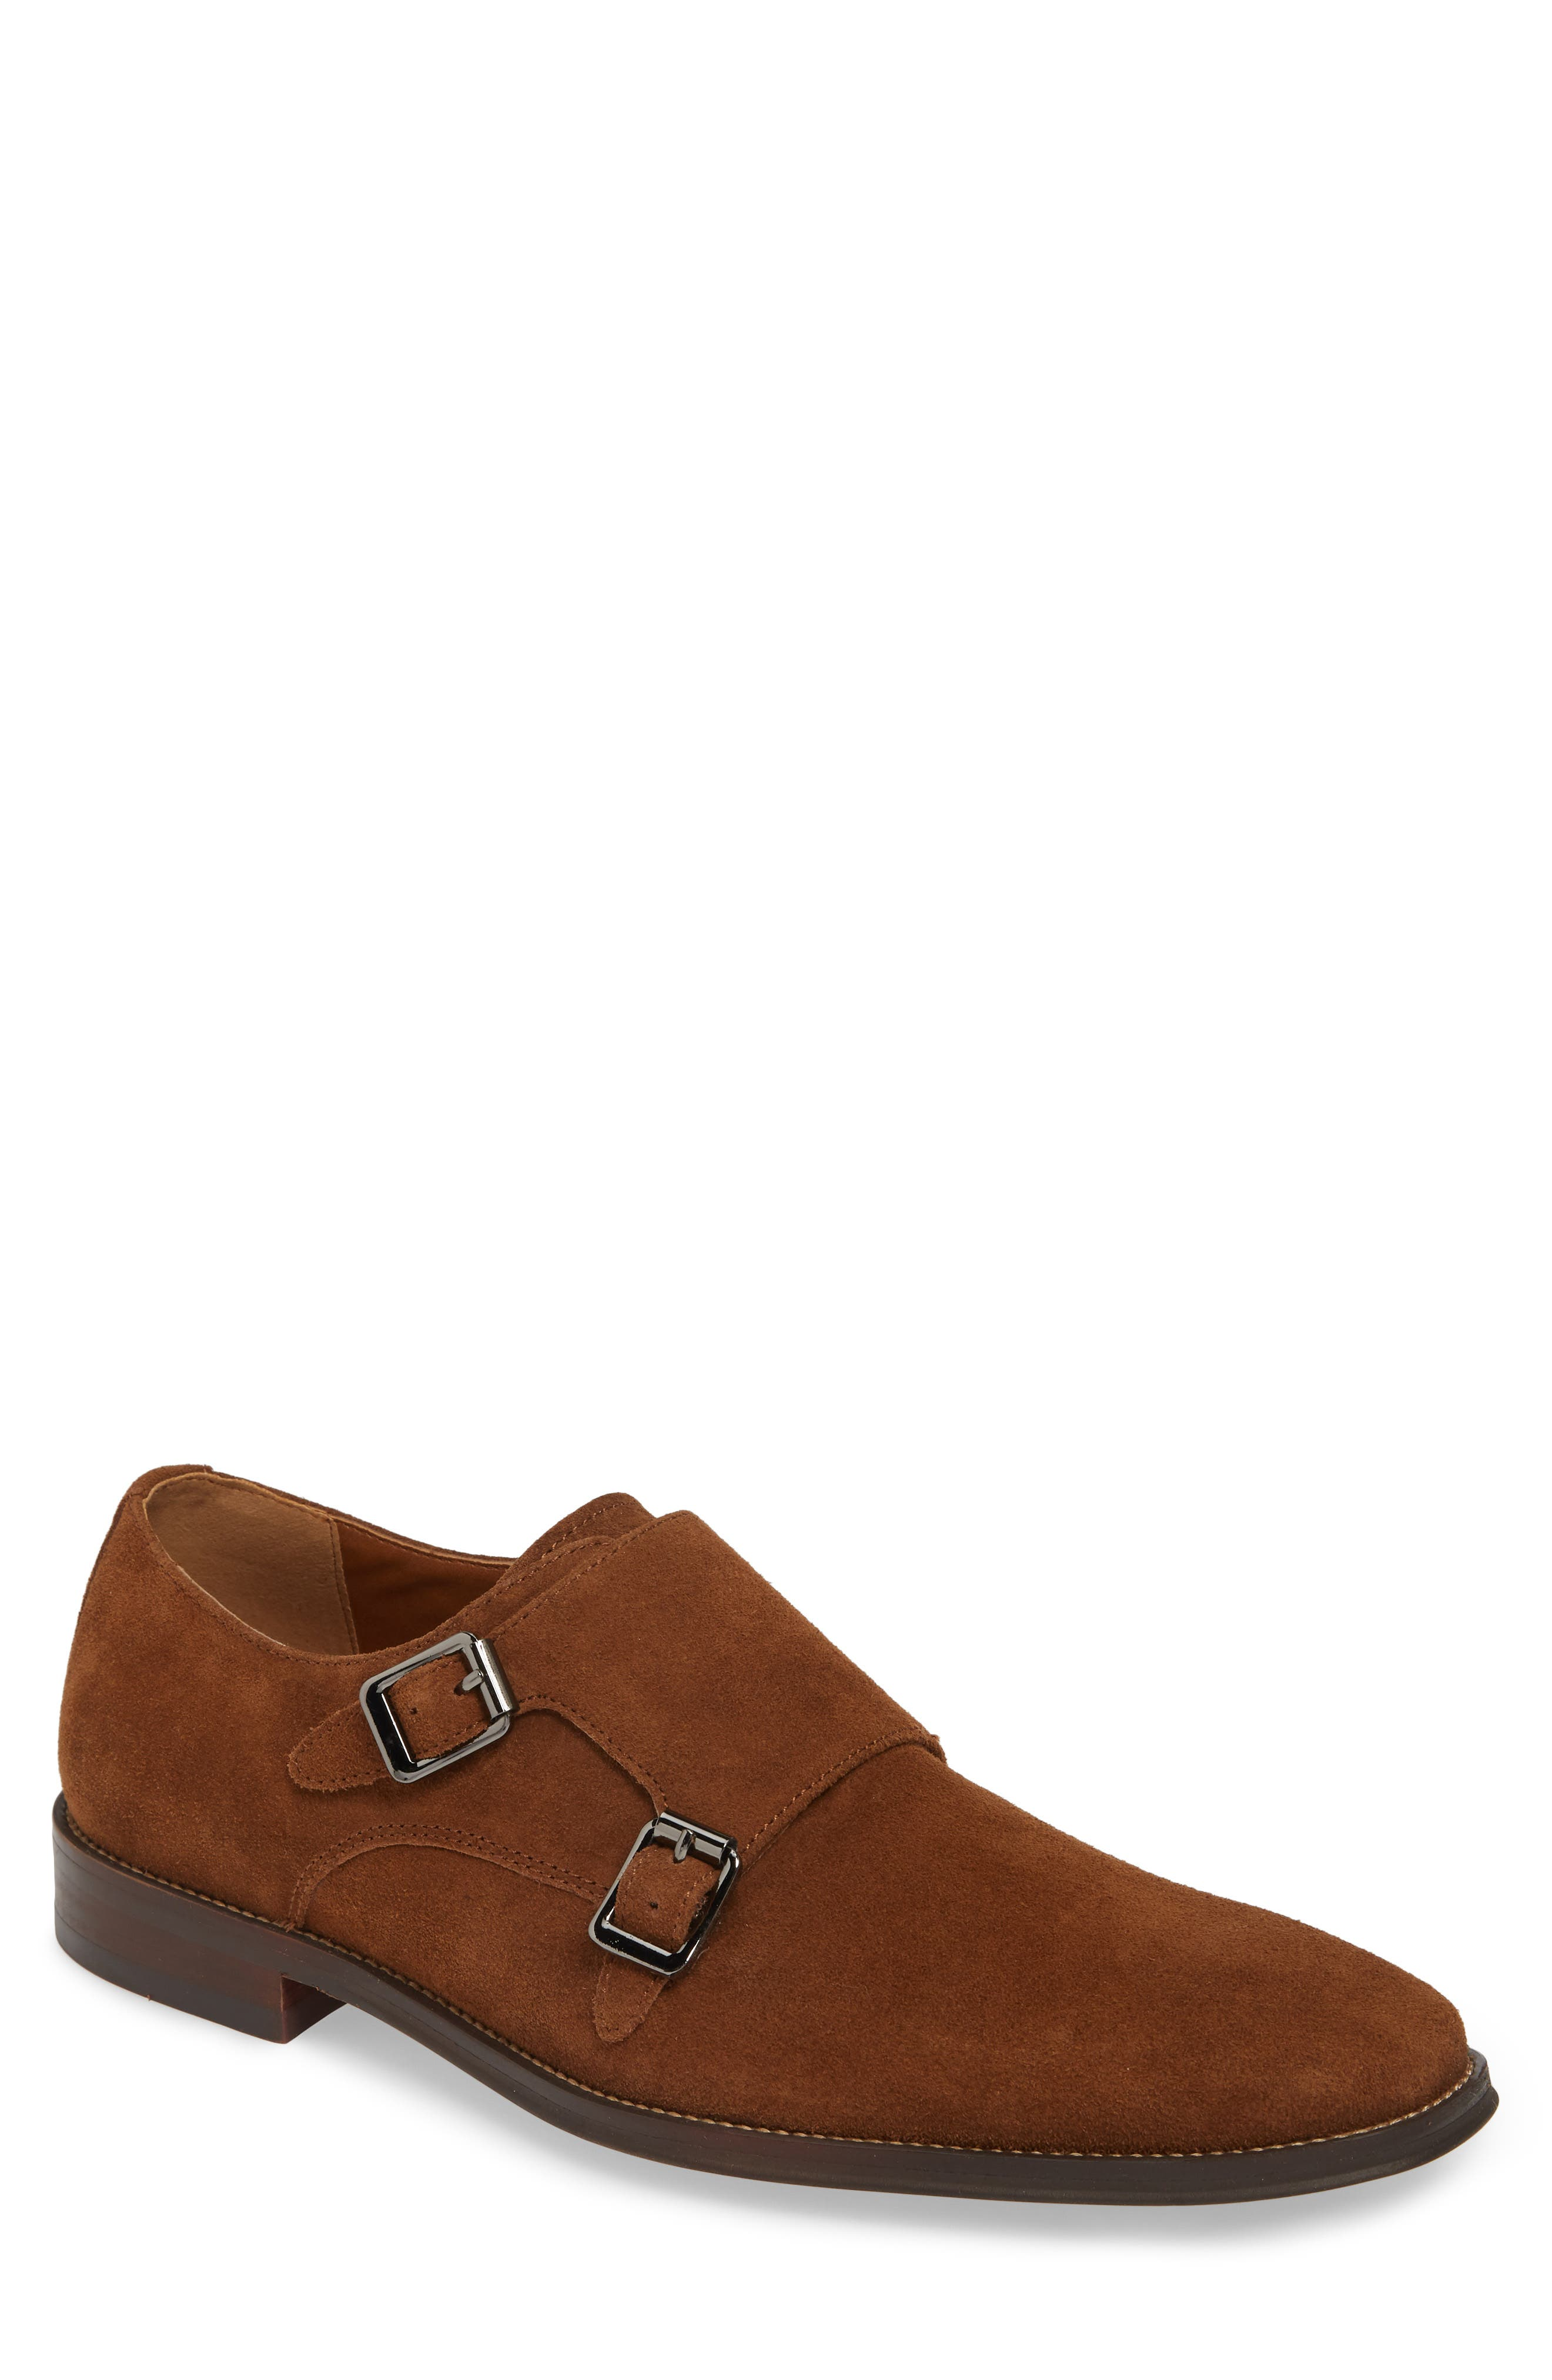 Roger Monk Strap Derby, Main, color, TAN SUEDE